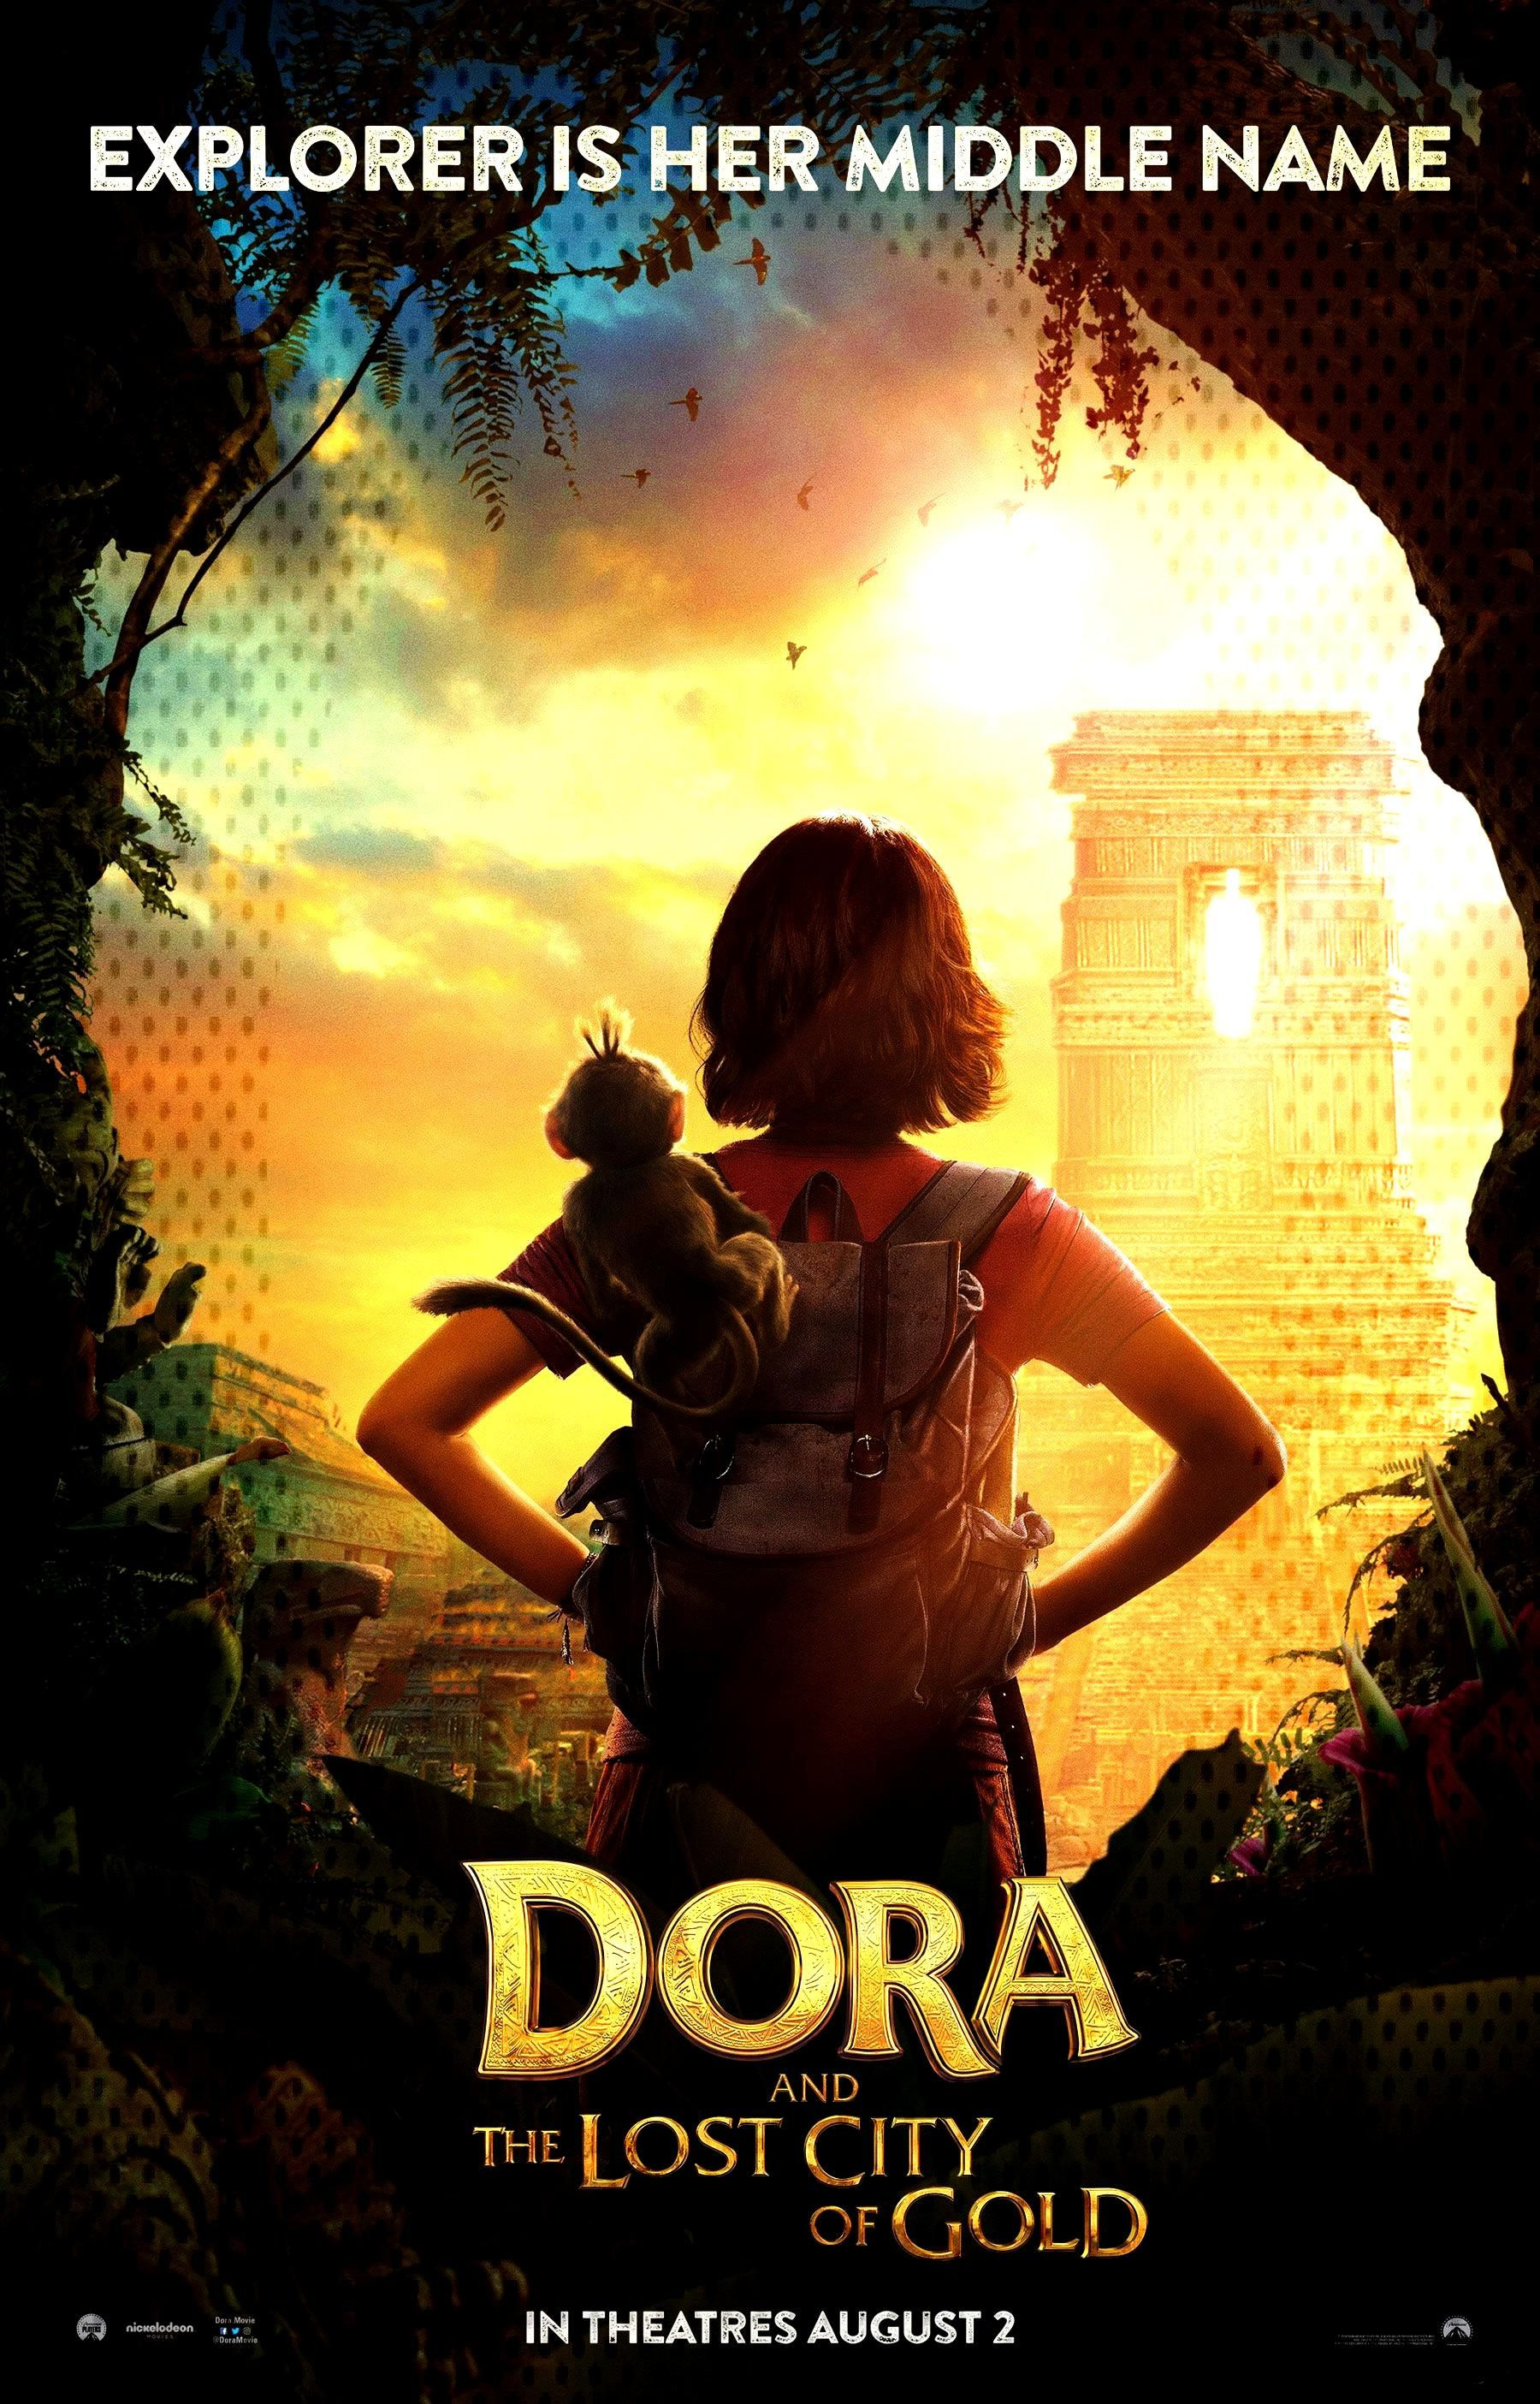 <em>Dora the Explorer</em> live-action movie posters explore the<em> Lost City of Gold</em>